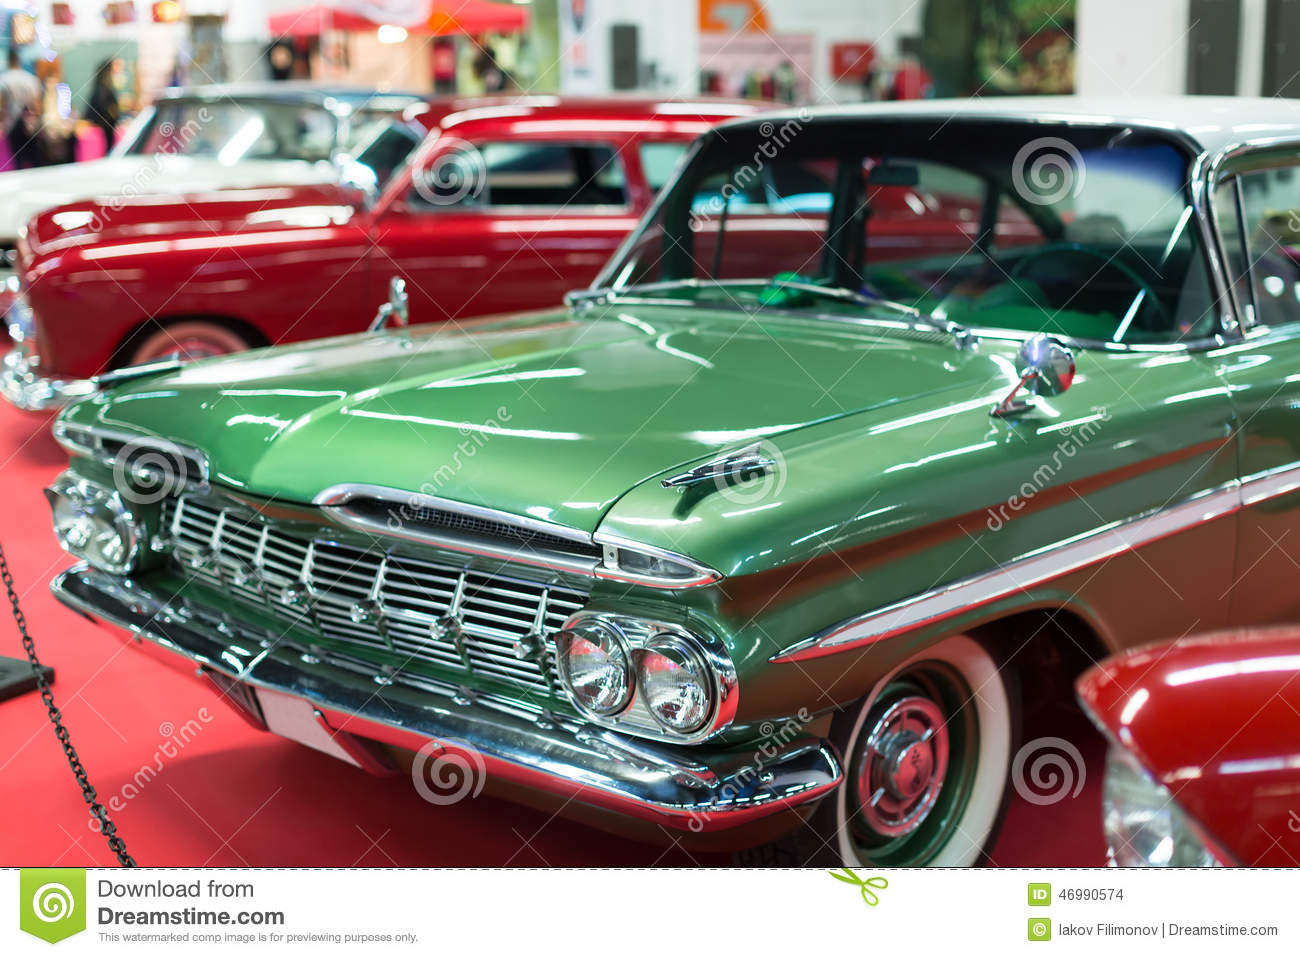 Vintage automobiles stock photo. Image of transportation - 46990574